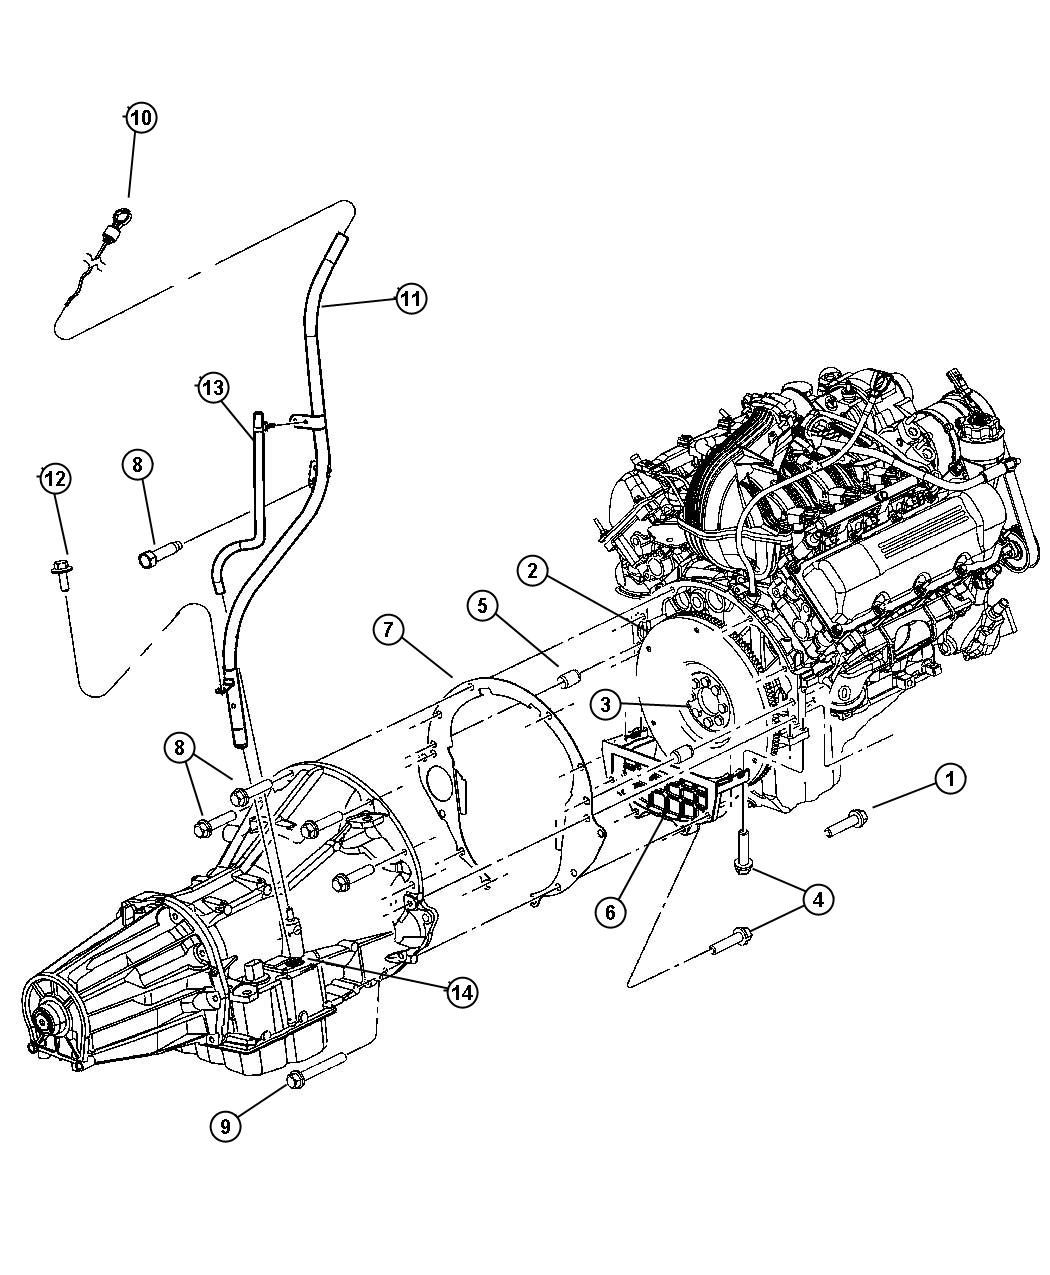 Range Rover Suspension Diagram